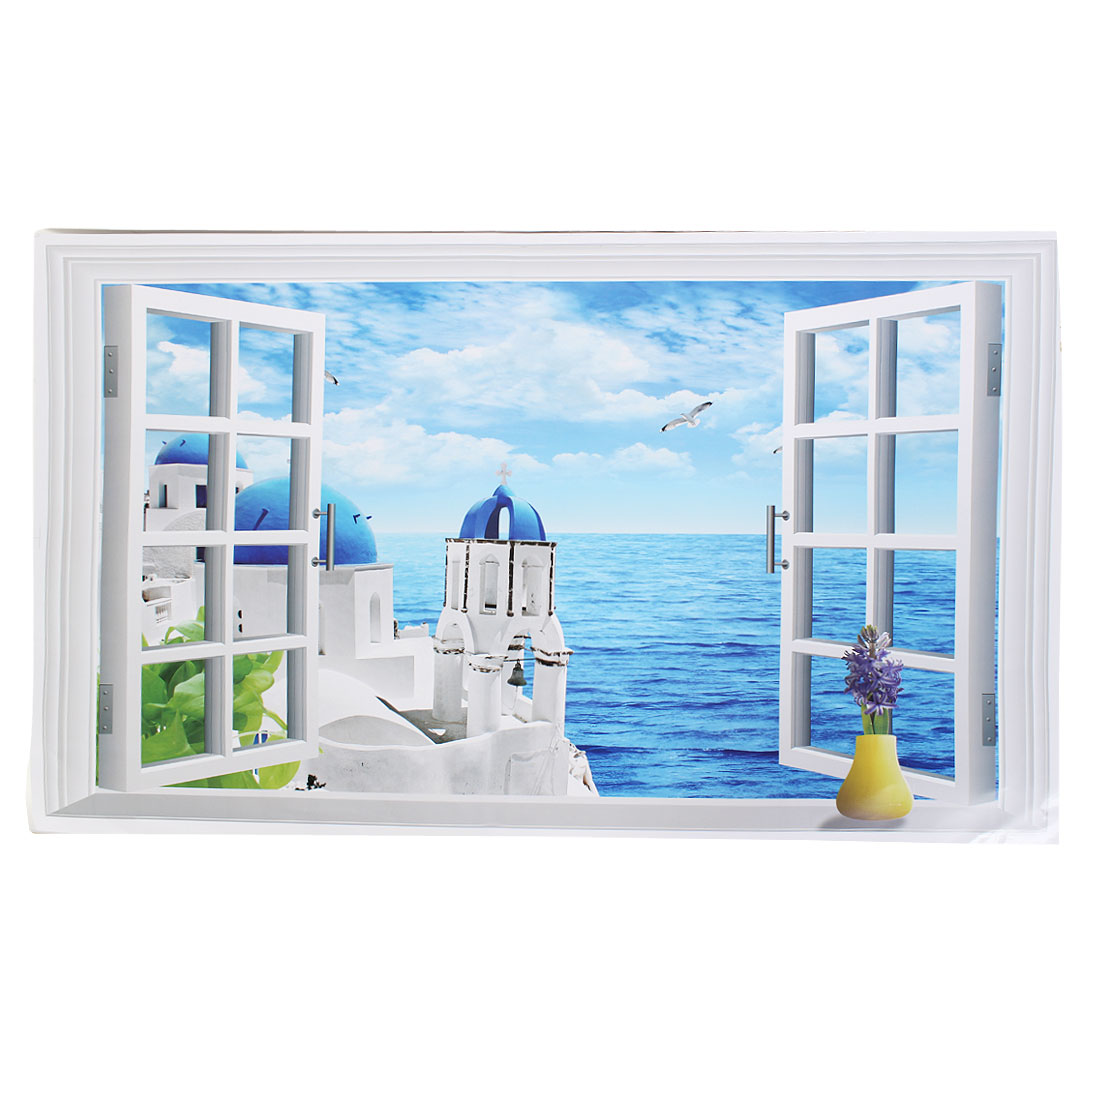 Home Room Decor Fake Window Seaview Background PVC Wall Sticker Wallpaper